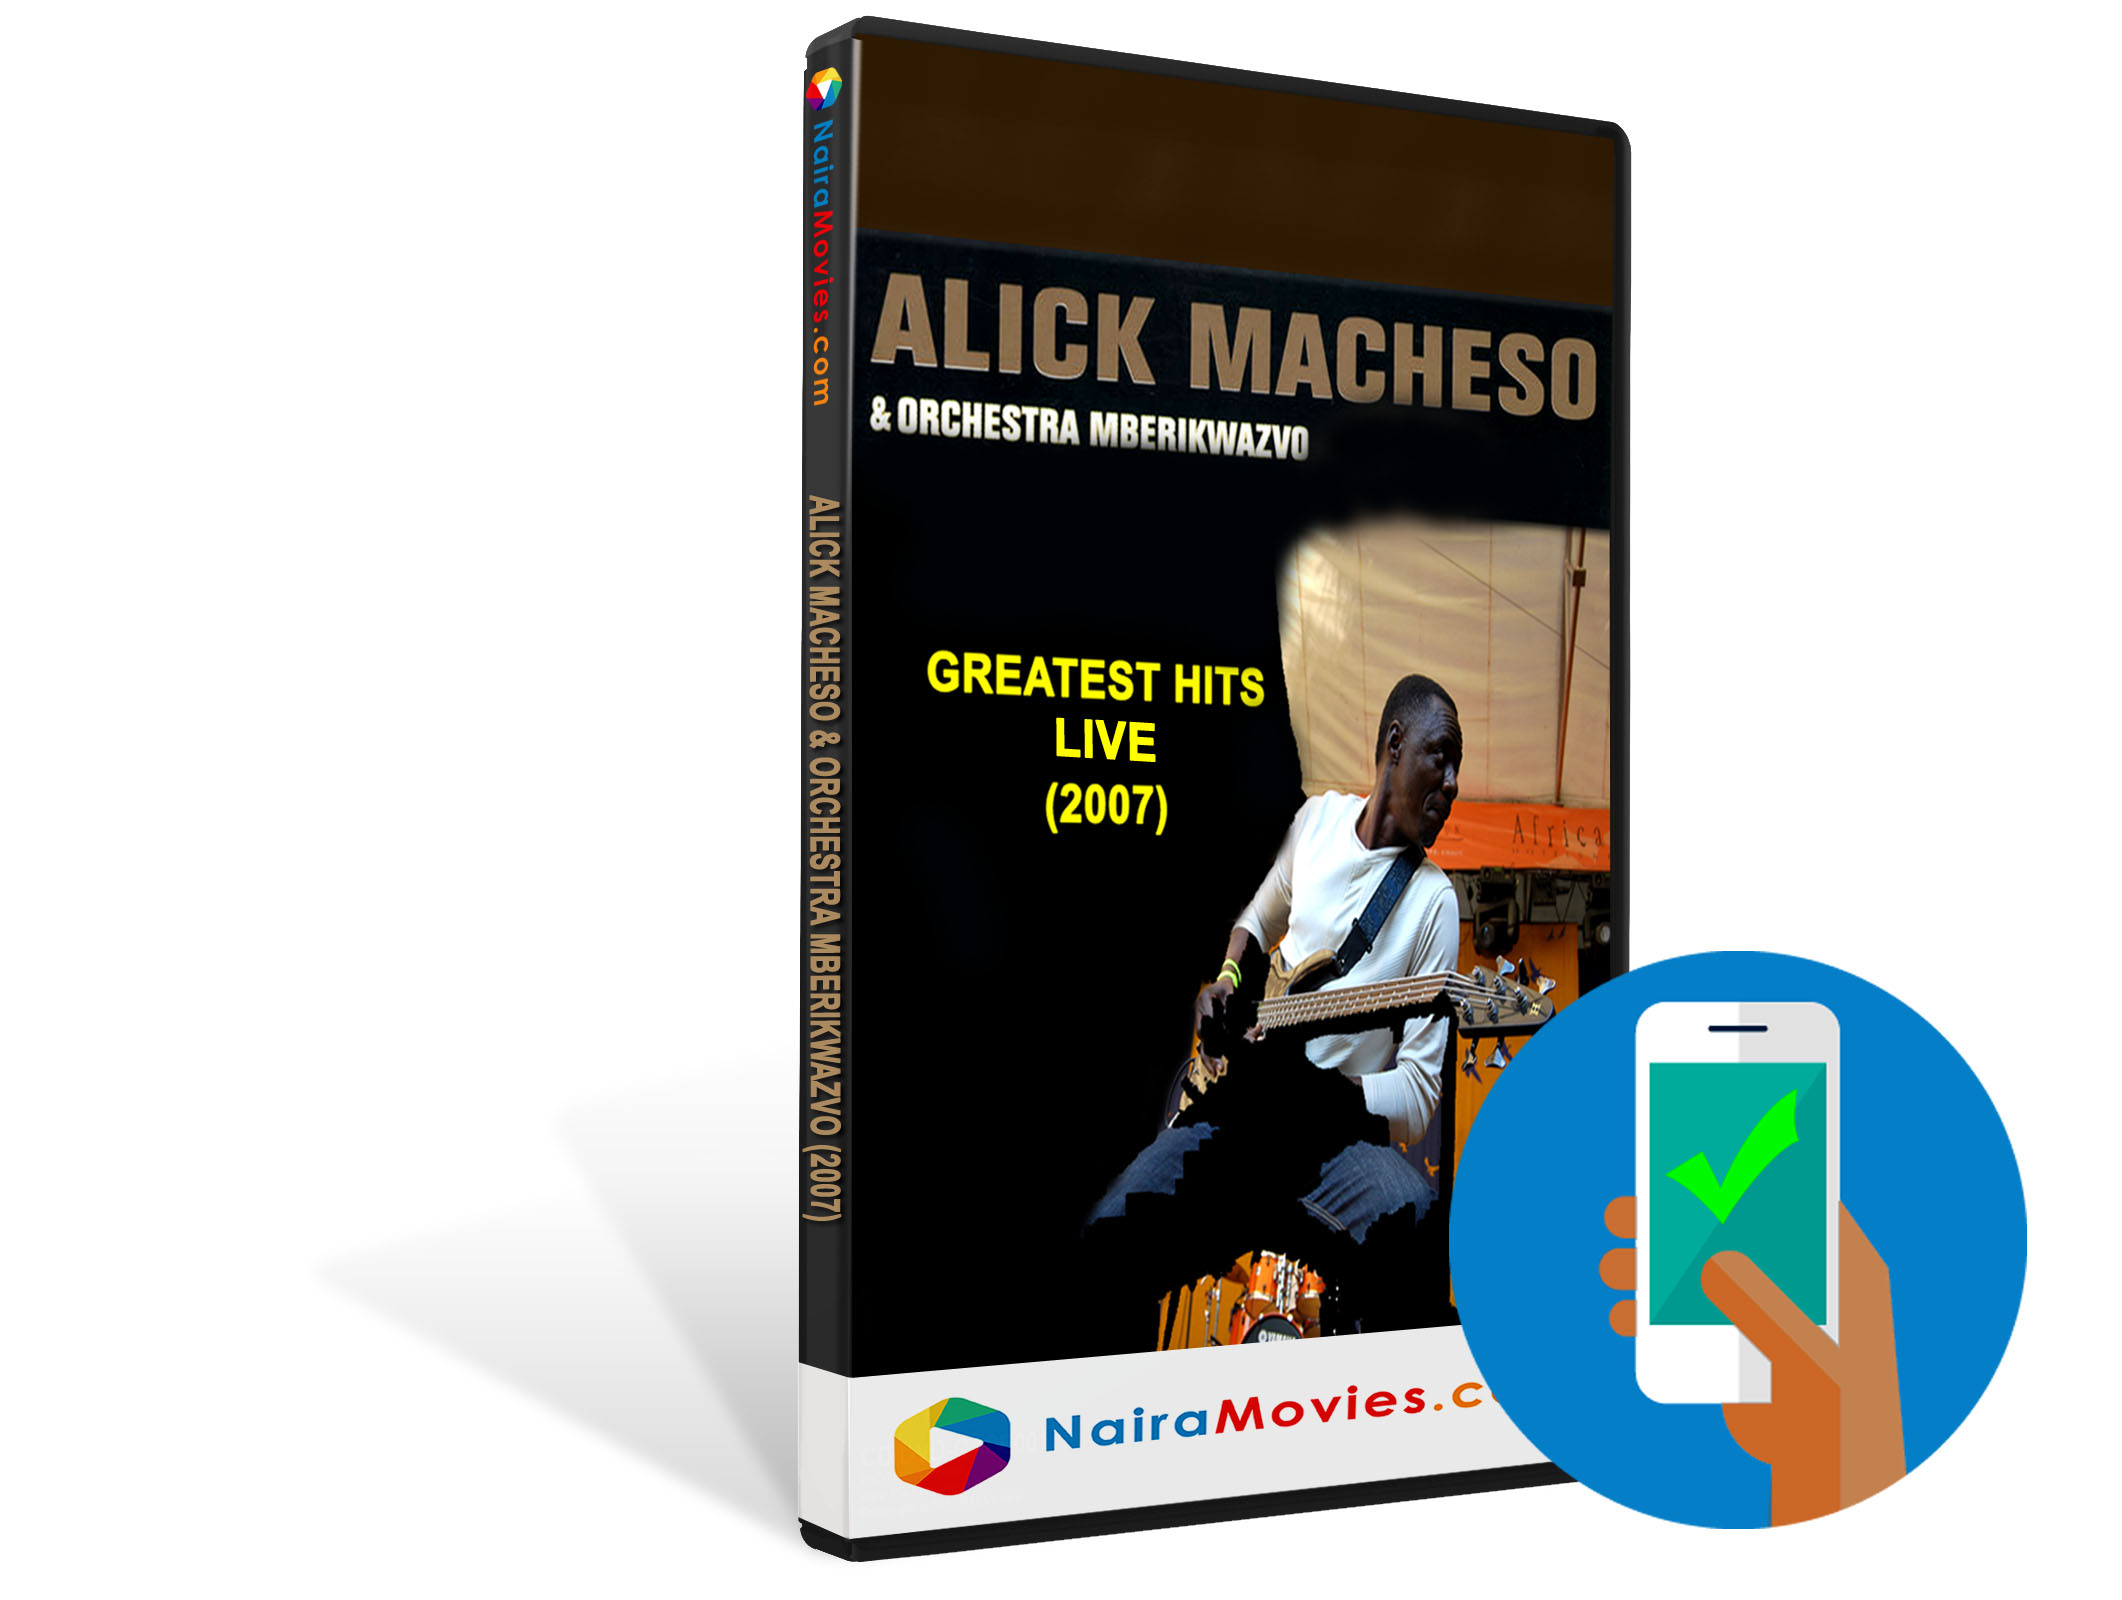 Alick Macheso & Orchestra Mberikwazvo - Greatest Hits Live(2007)